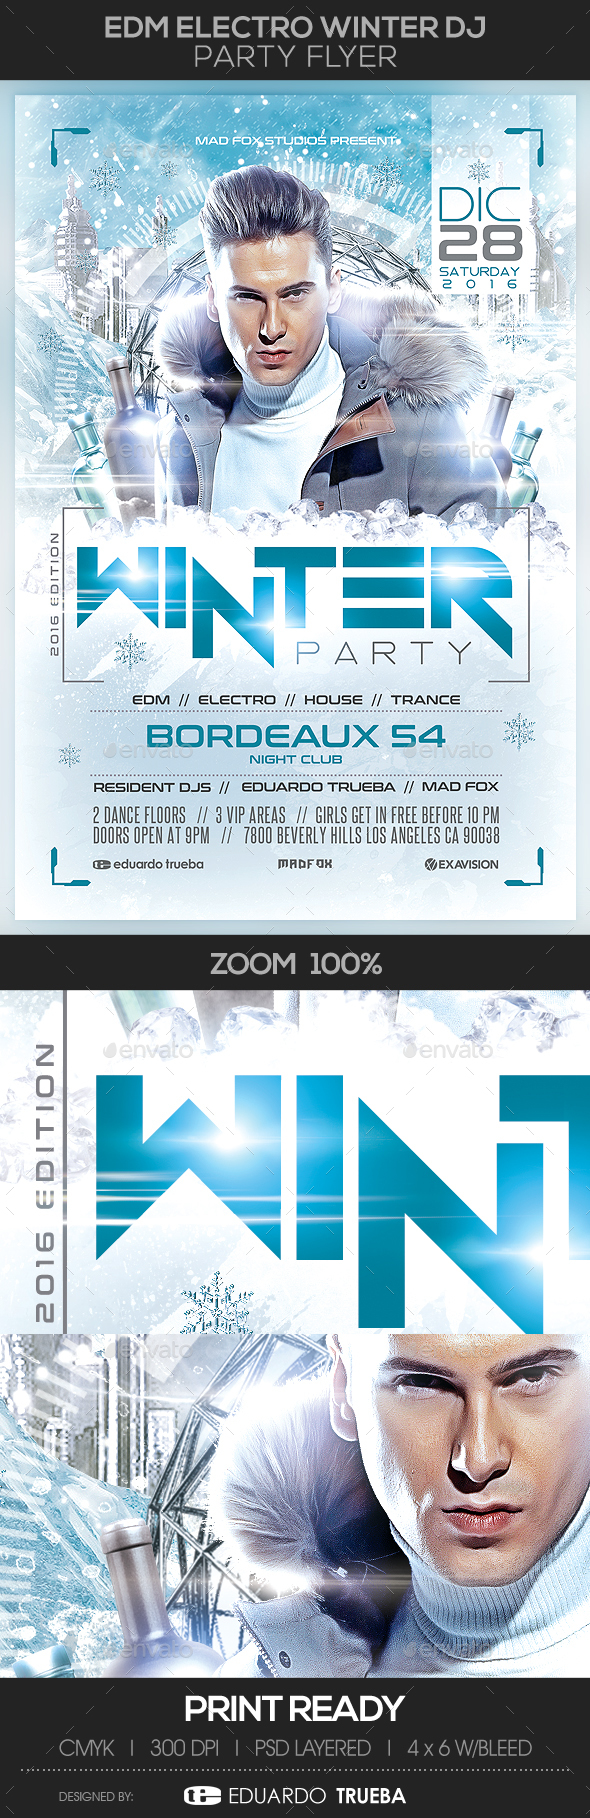 EDM Electro Winter Dj Party Flyer - Events Flyers